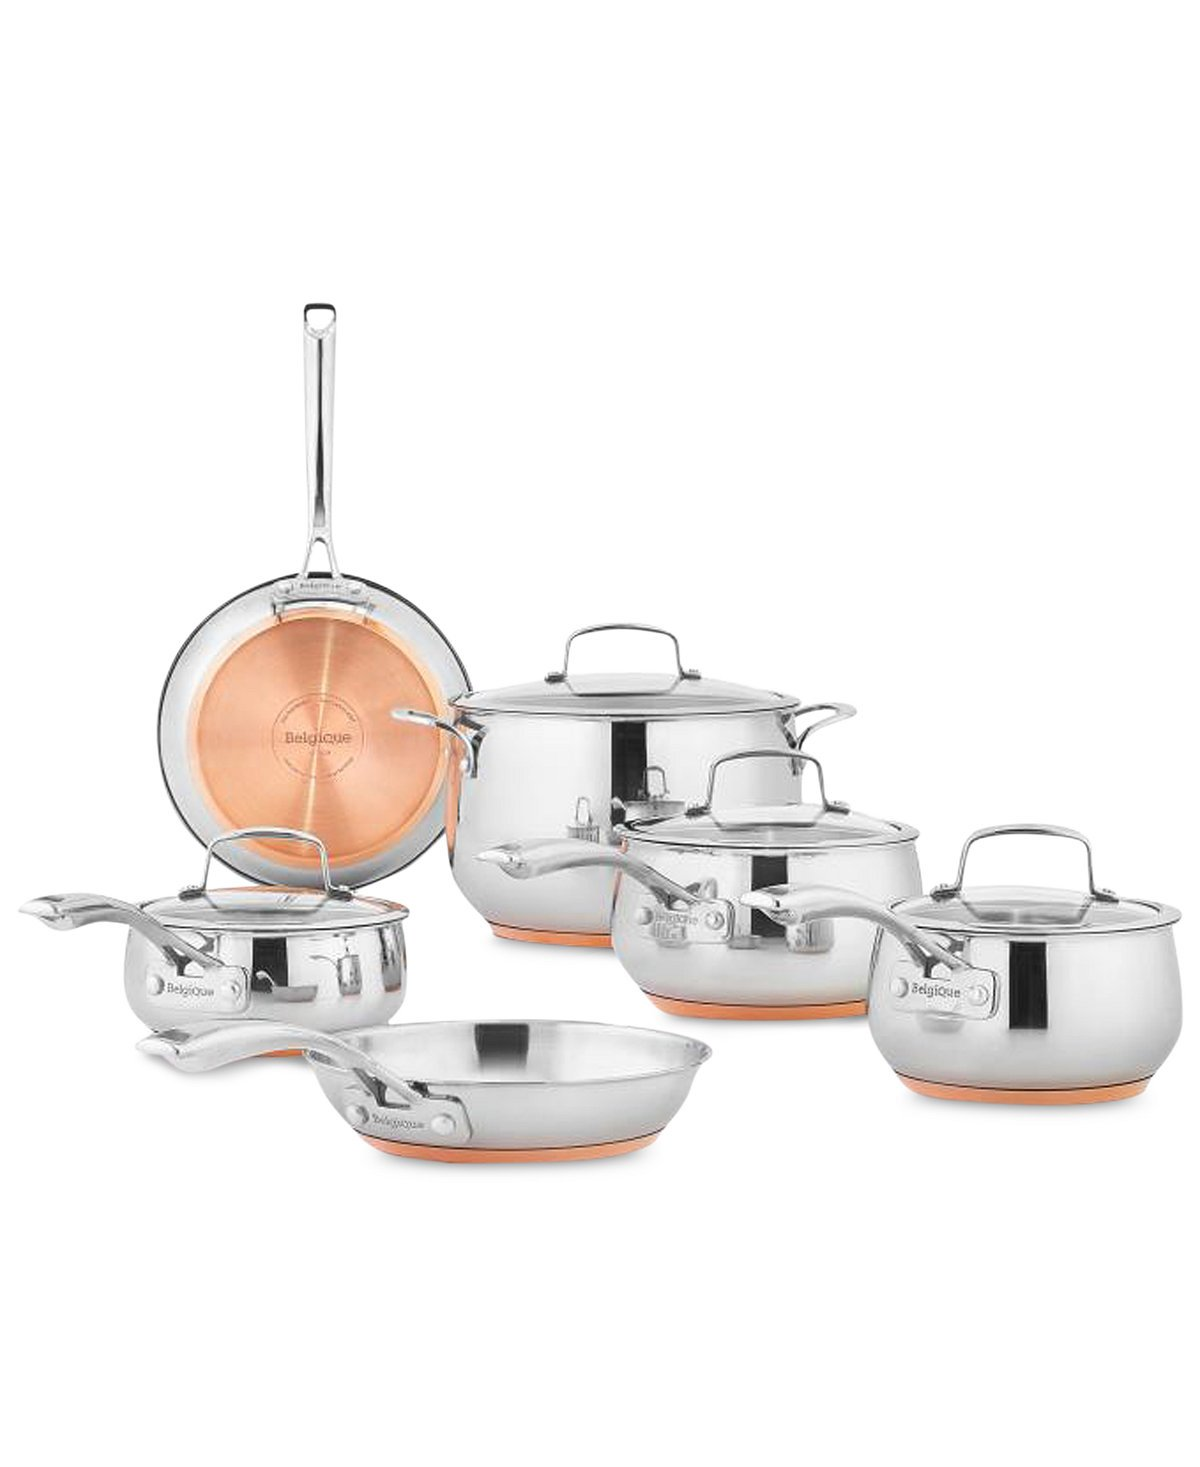 Belgique | Copper Bottom Cookware Set for Quick & Even Heating | High End Gourmet 10 Piece Cookware Set for Great Home Cooked Meals | Copper & Stainless Steel